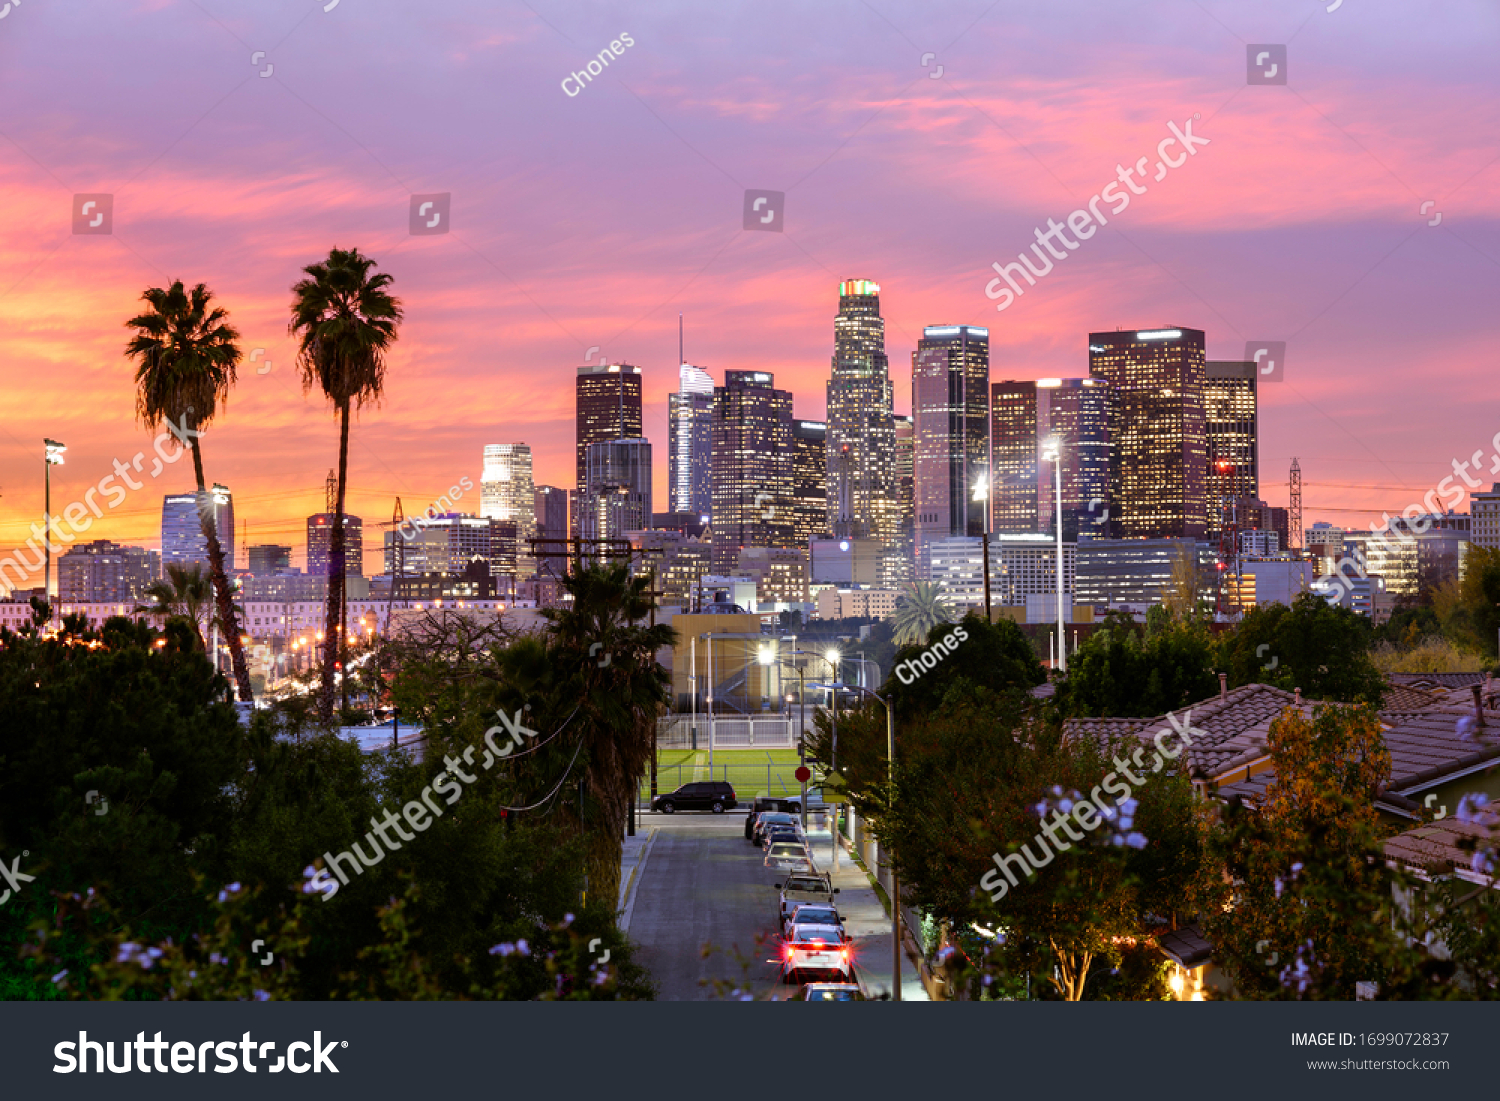 Los Angeles downtown skyline at sunset #1699072837